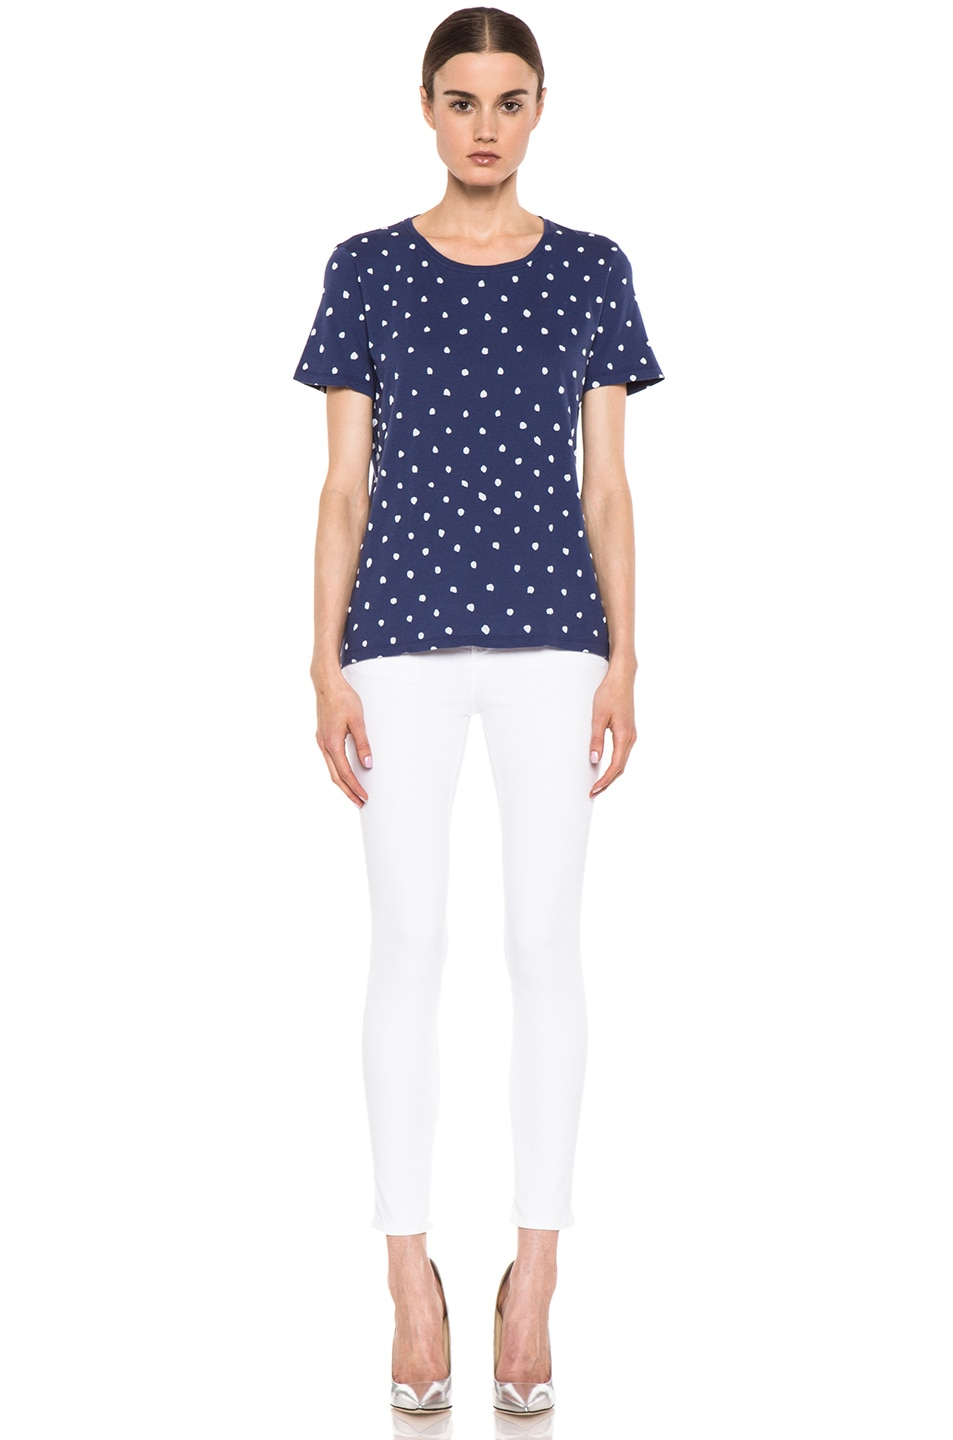 Image 5 of EACH x OTHER By Naco Paris Printed Dotted Tee in Blue